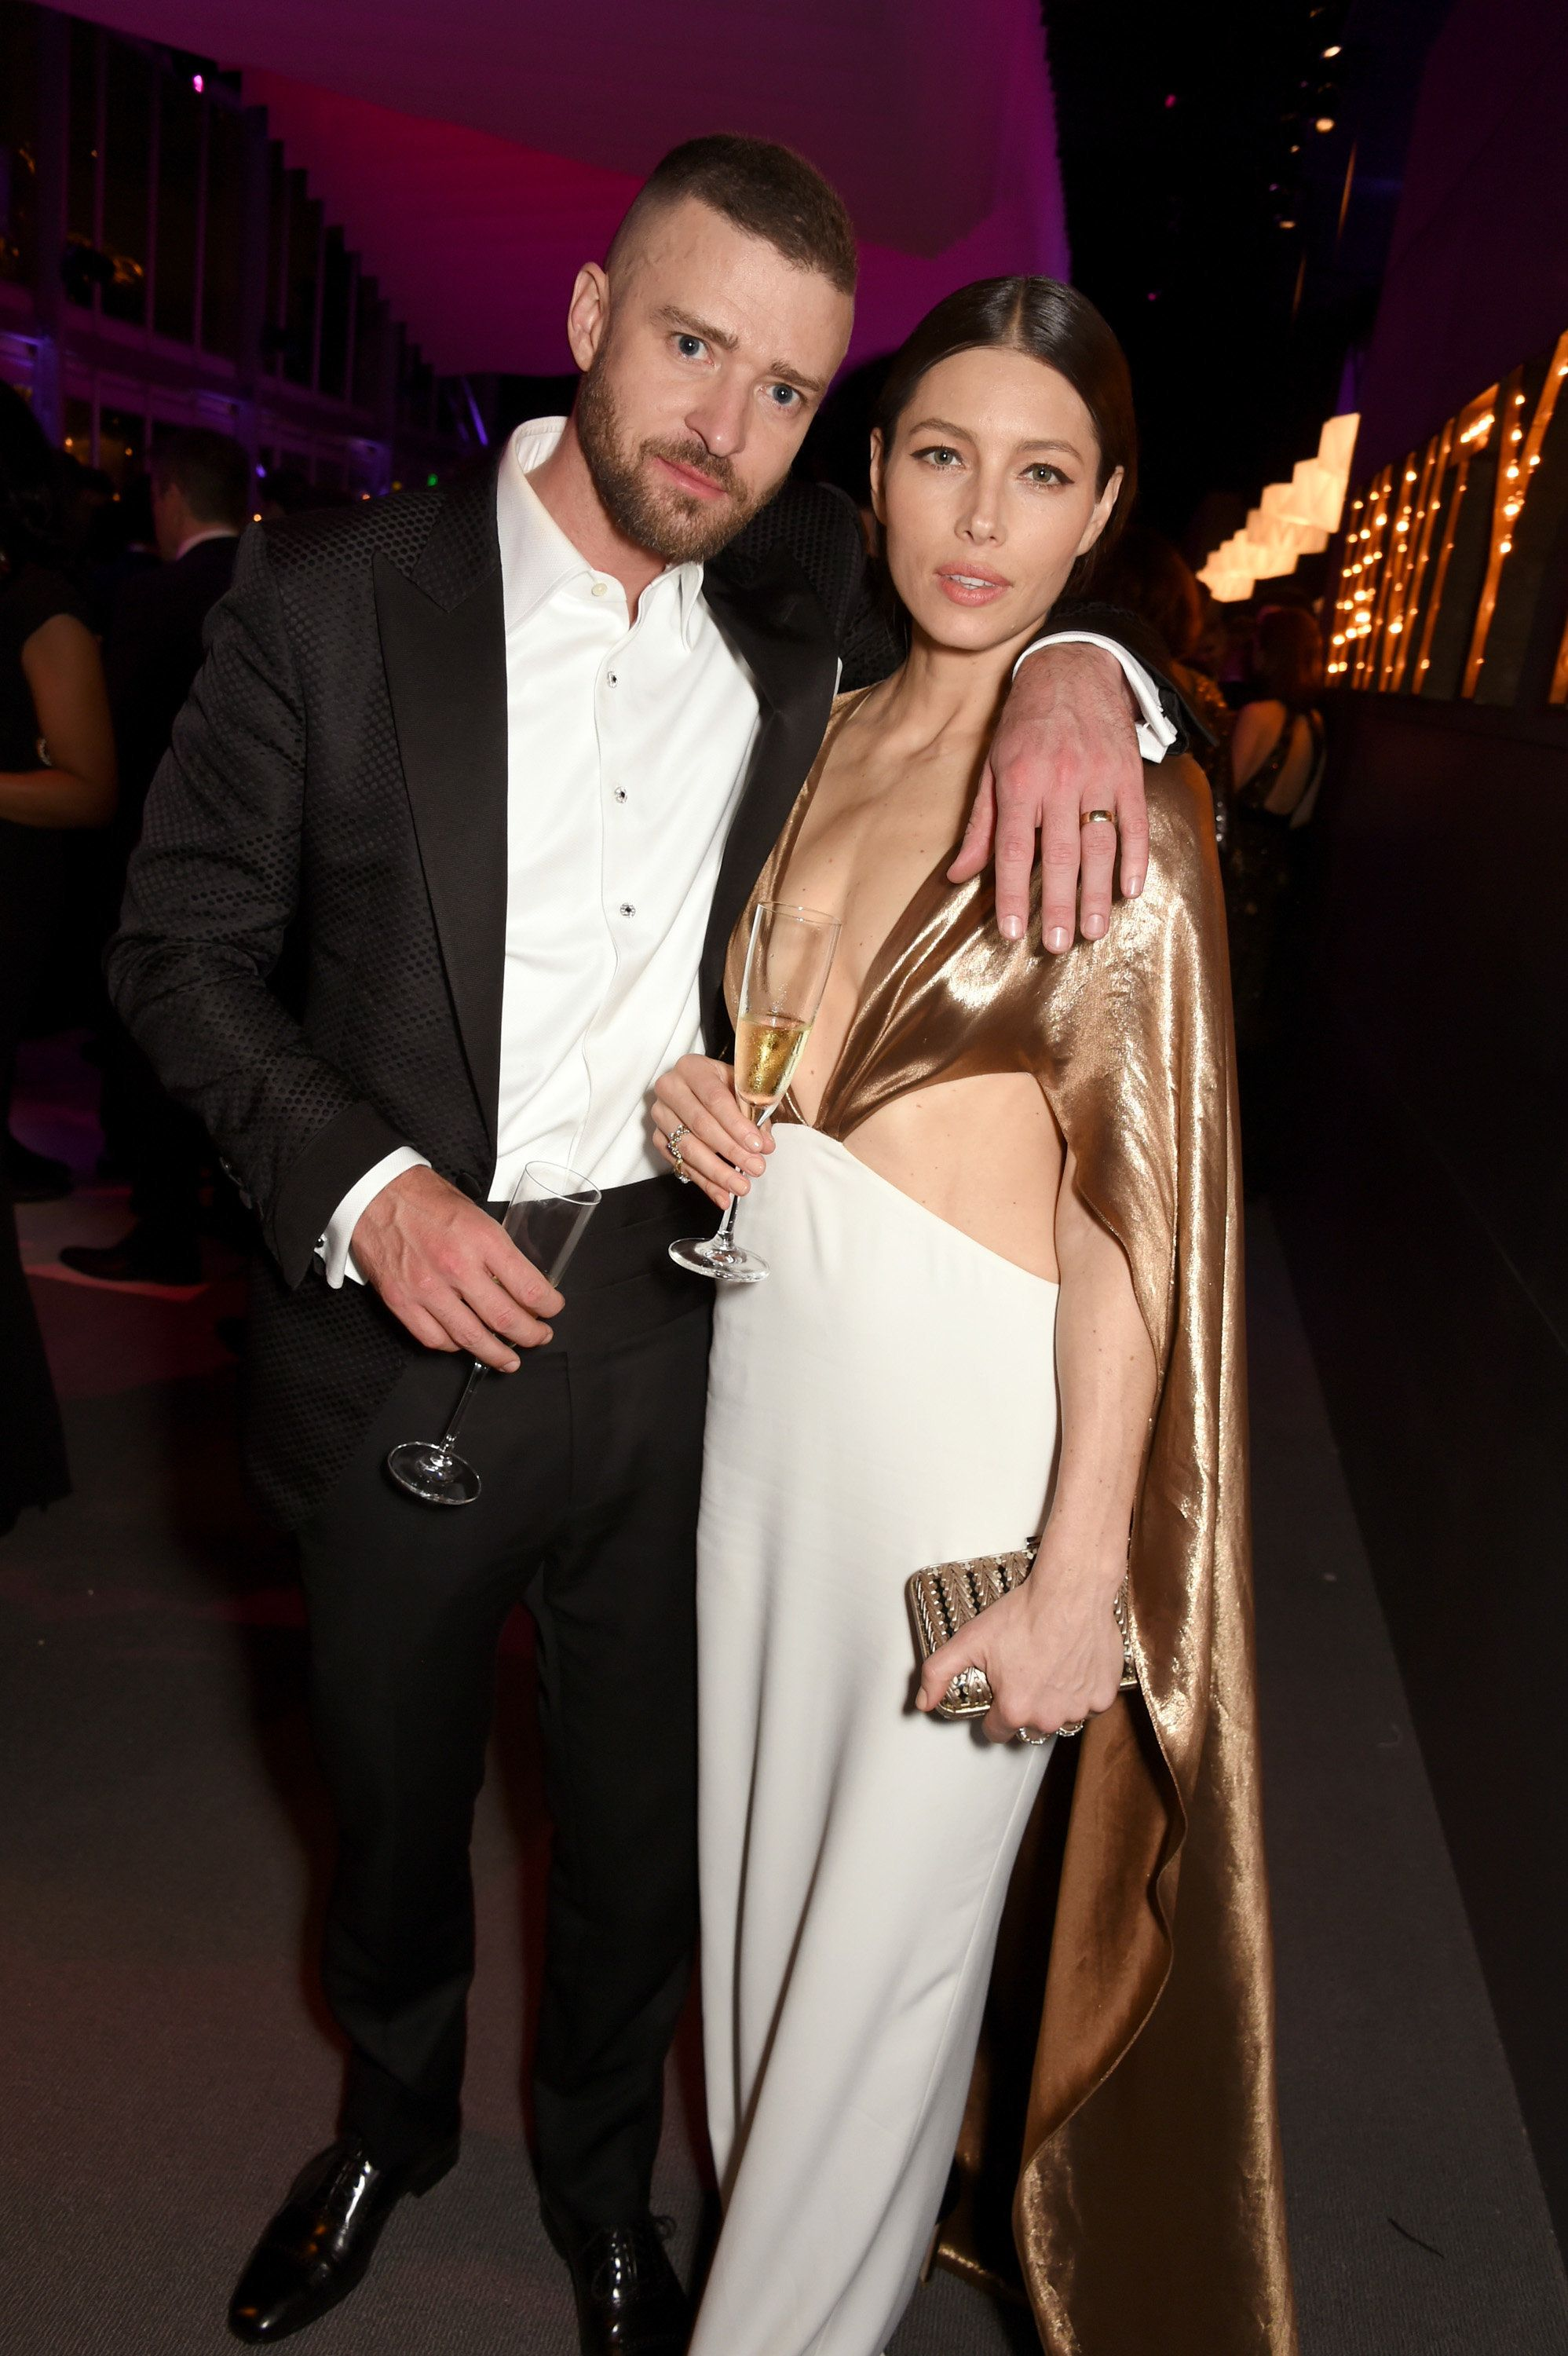 BEVERLY HILLS, CA - FEBRUARY 26: (EXCLUSIVE ACCESS, SPECIAL RATES APPLY) Singer/actor Justin Timberlake (L) and actor Jessica Biel attend the 2017 Vanity Fair Oscar Party hosted by Graydon Carter at Wallis Annenberg Center for the Performing Arts on February 26, 2017 in Beverly Hills, California.  (Photo by Dave M. Benett/VF17/WireImage)